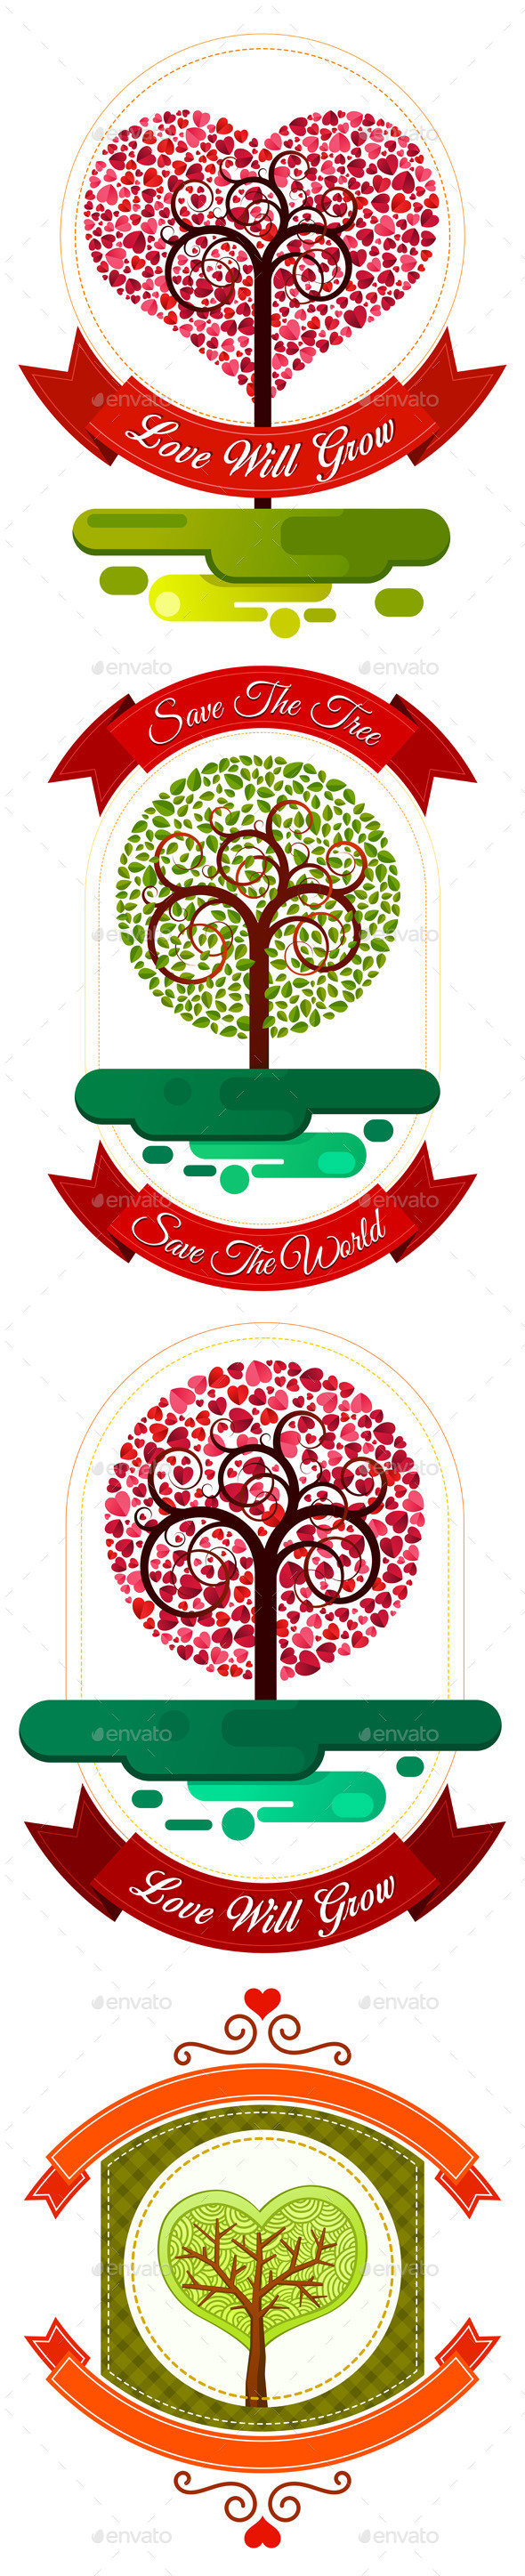 GraphicRiver Combination of Heart and Tree Ornament 9459523